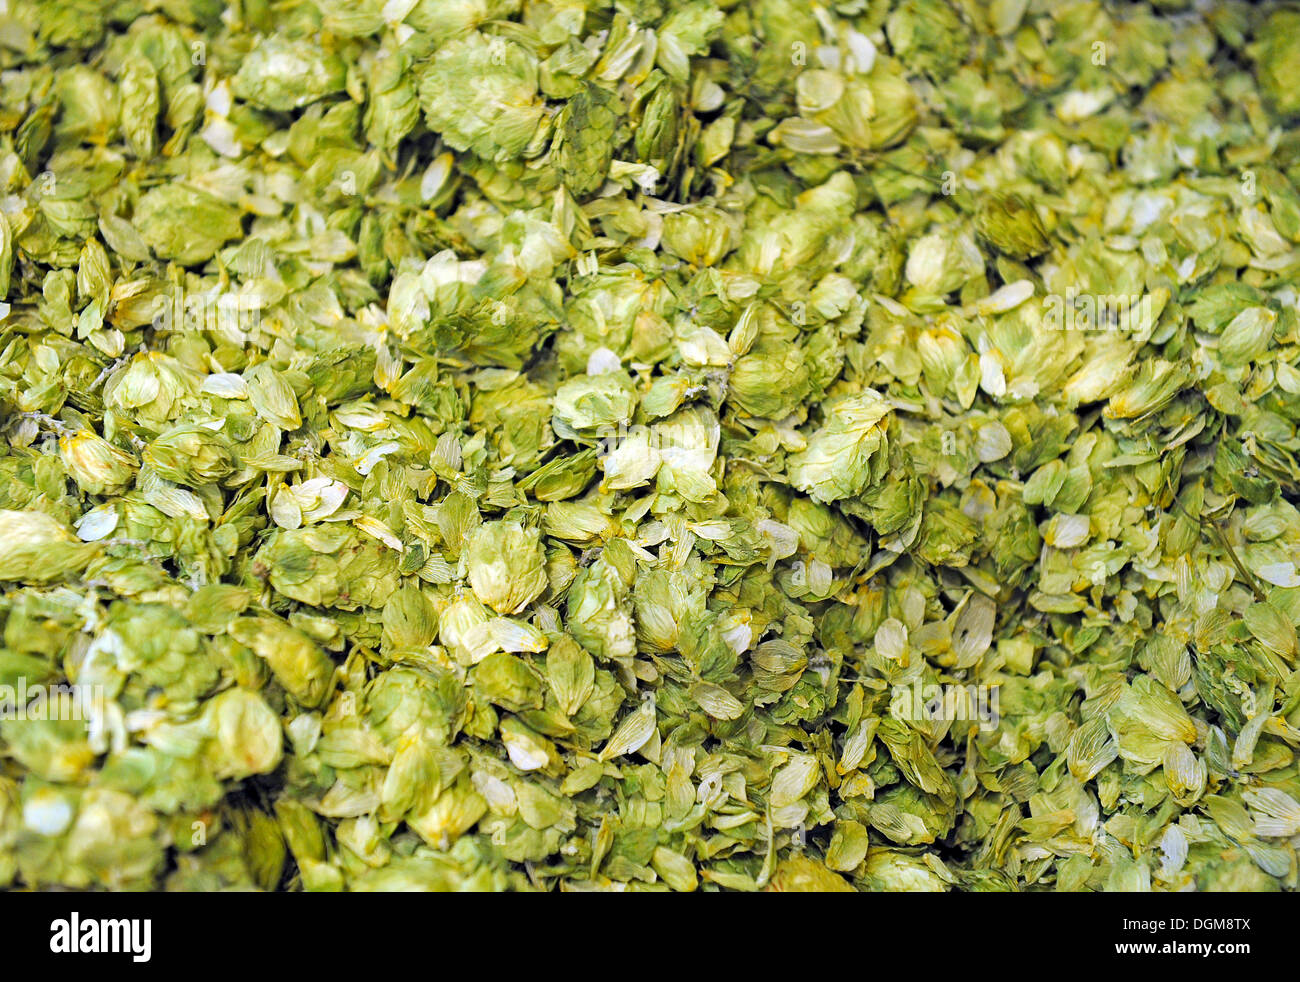 Dried hops (Humulus lupulus), for beer brewing - Stock Image